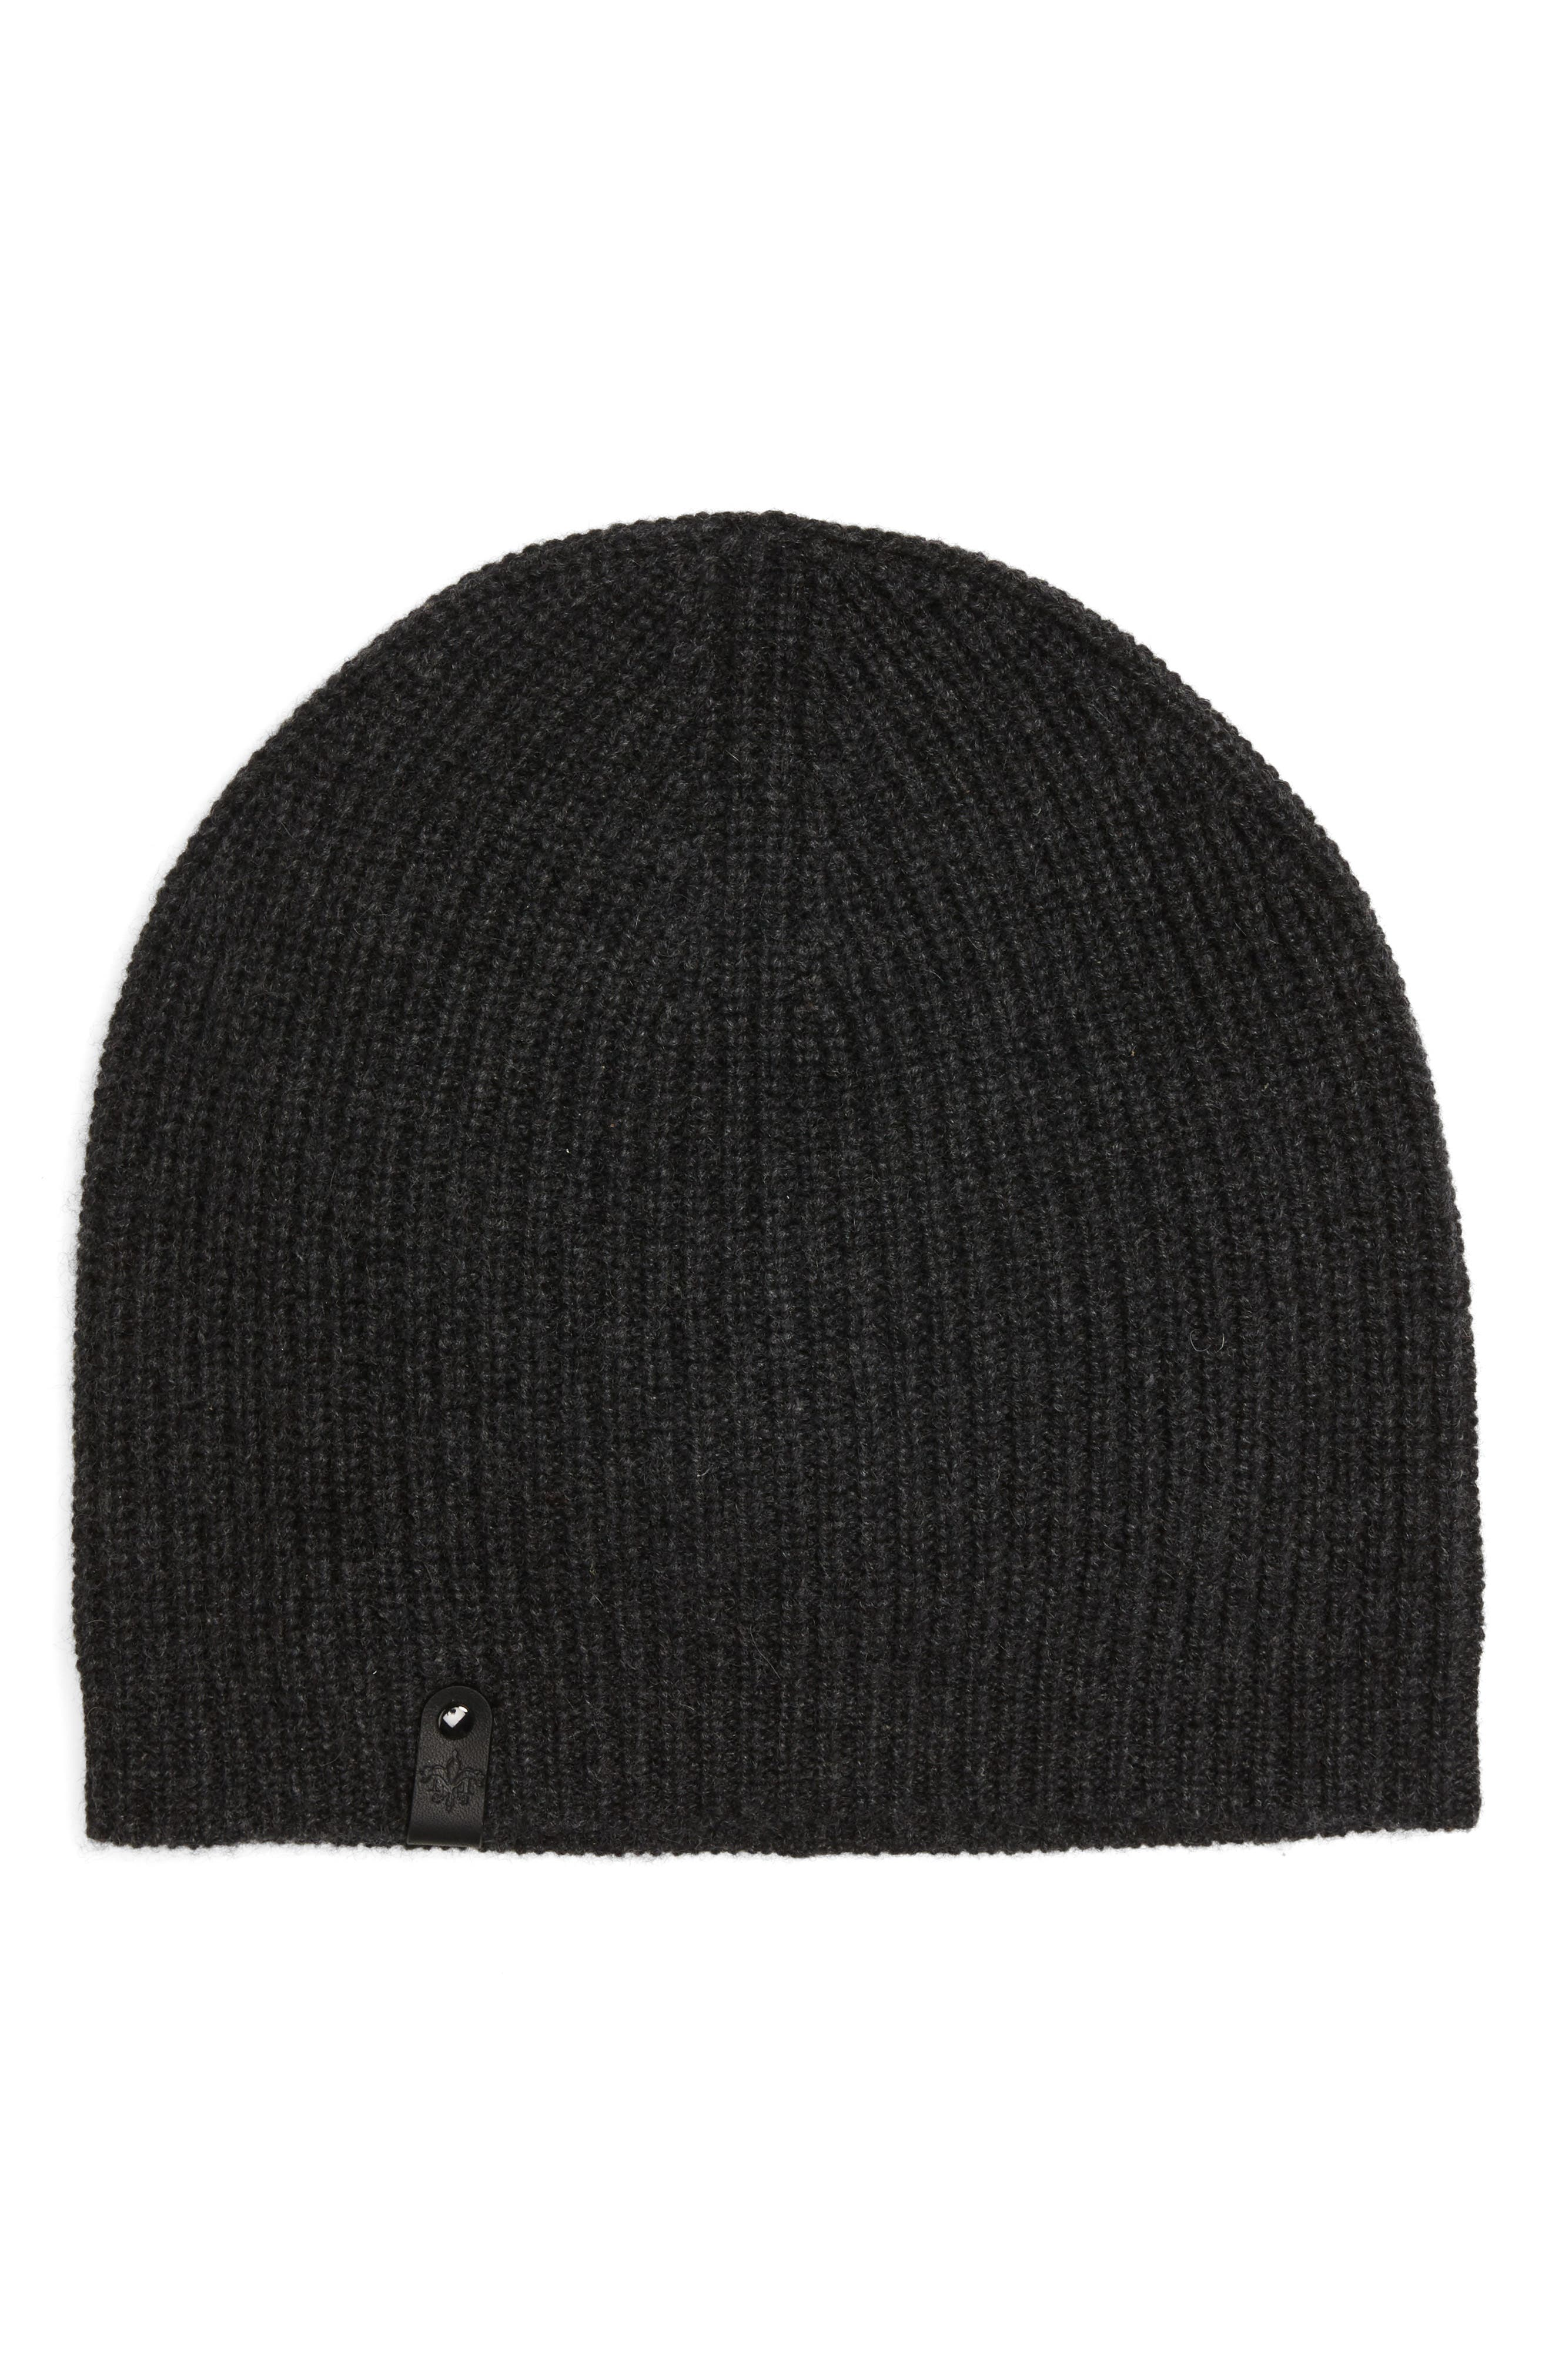 Alternate Image 1 Selected - Mackage Aaron Cashmere Beanie